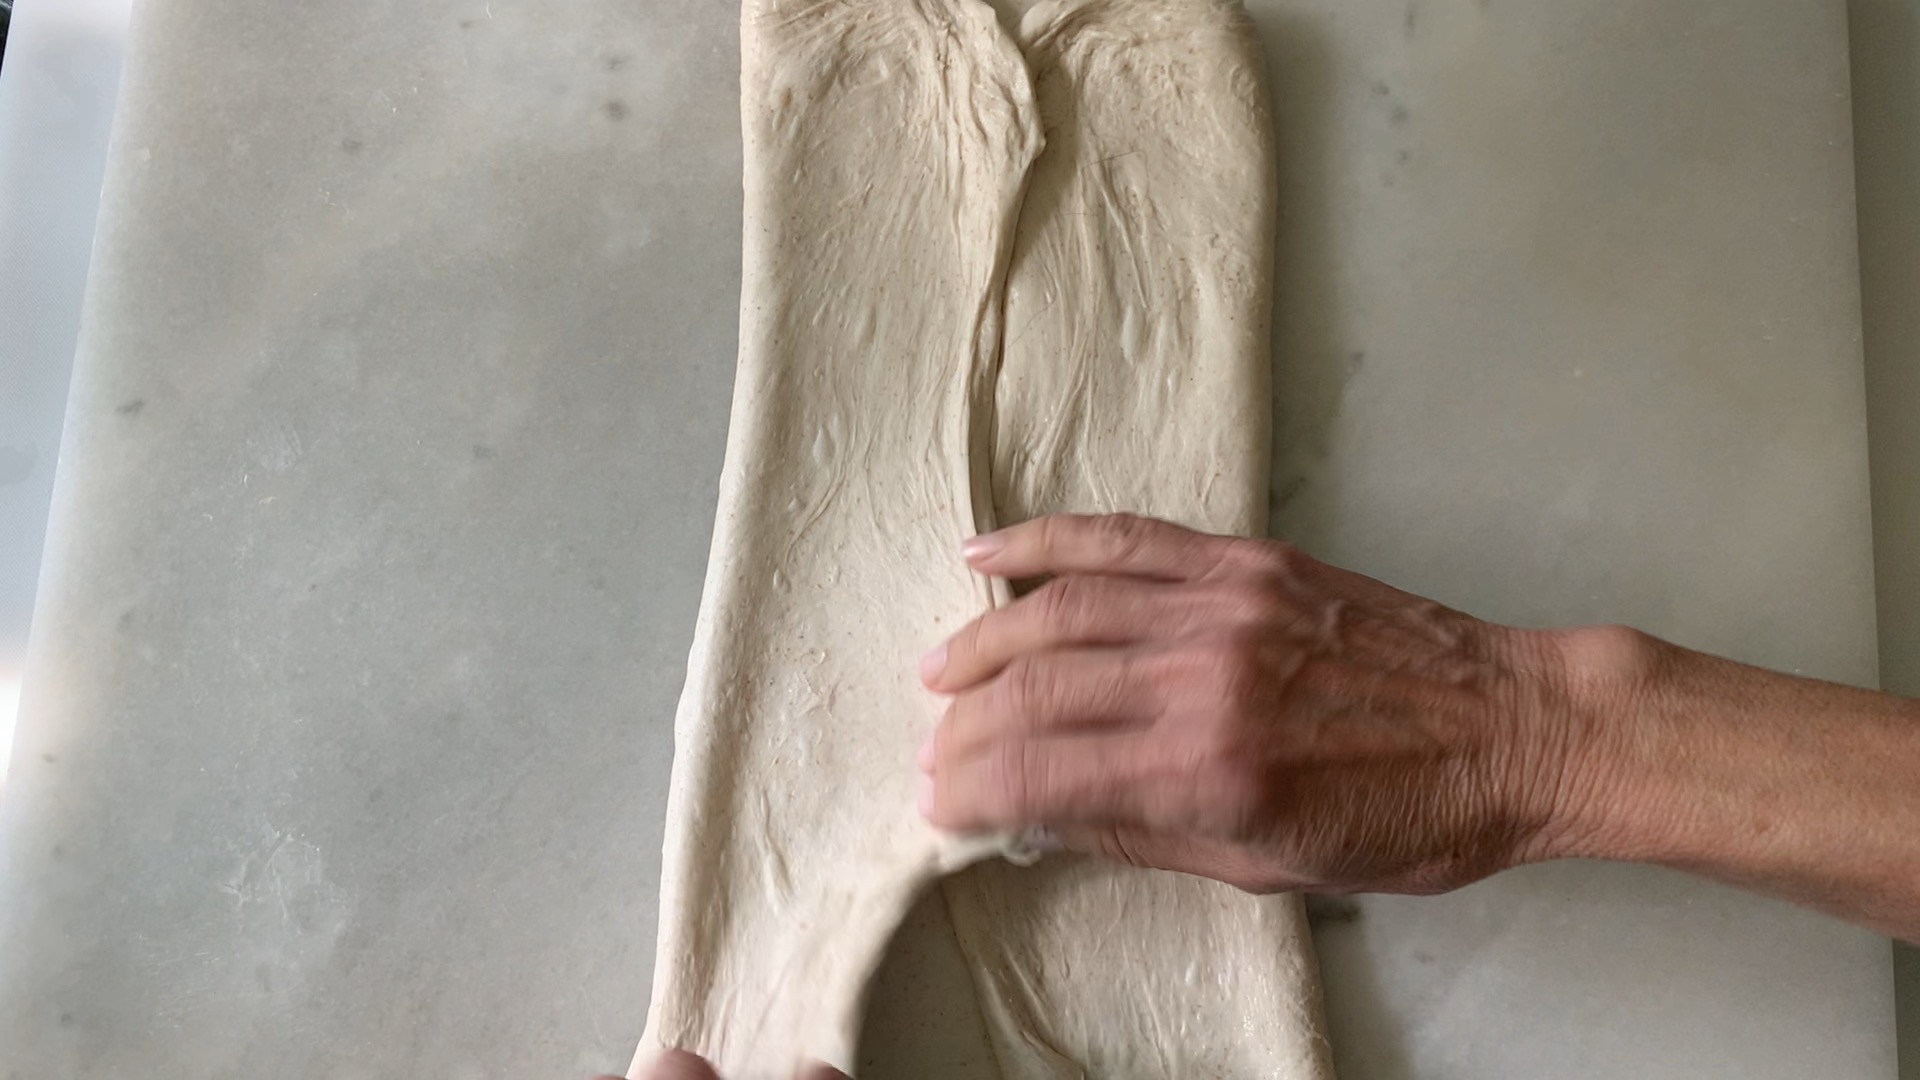 forming the dough after stretching it into a large square.